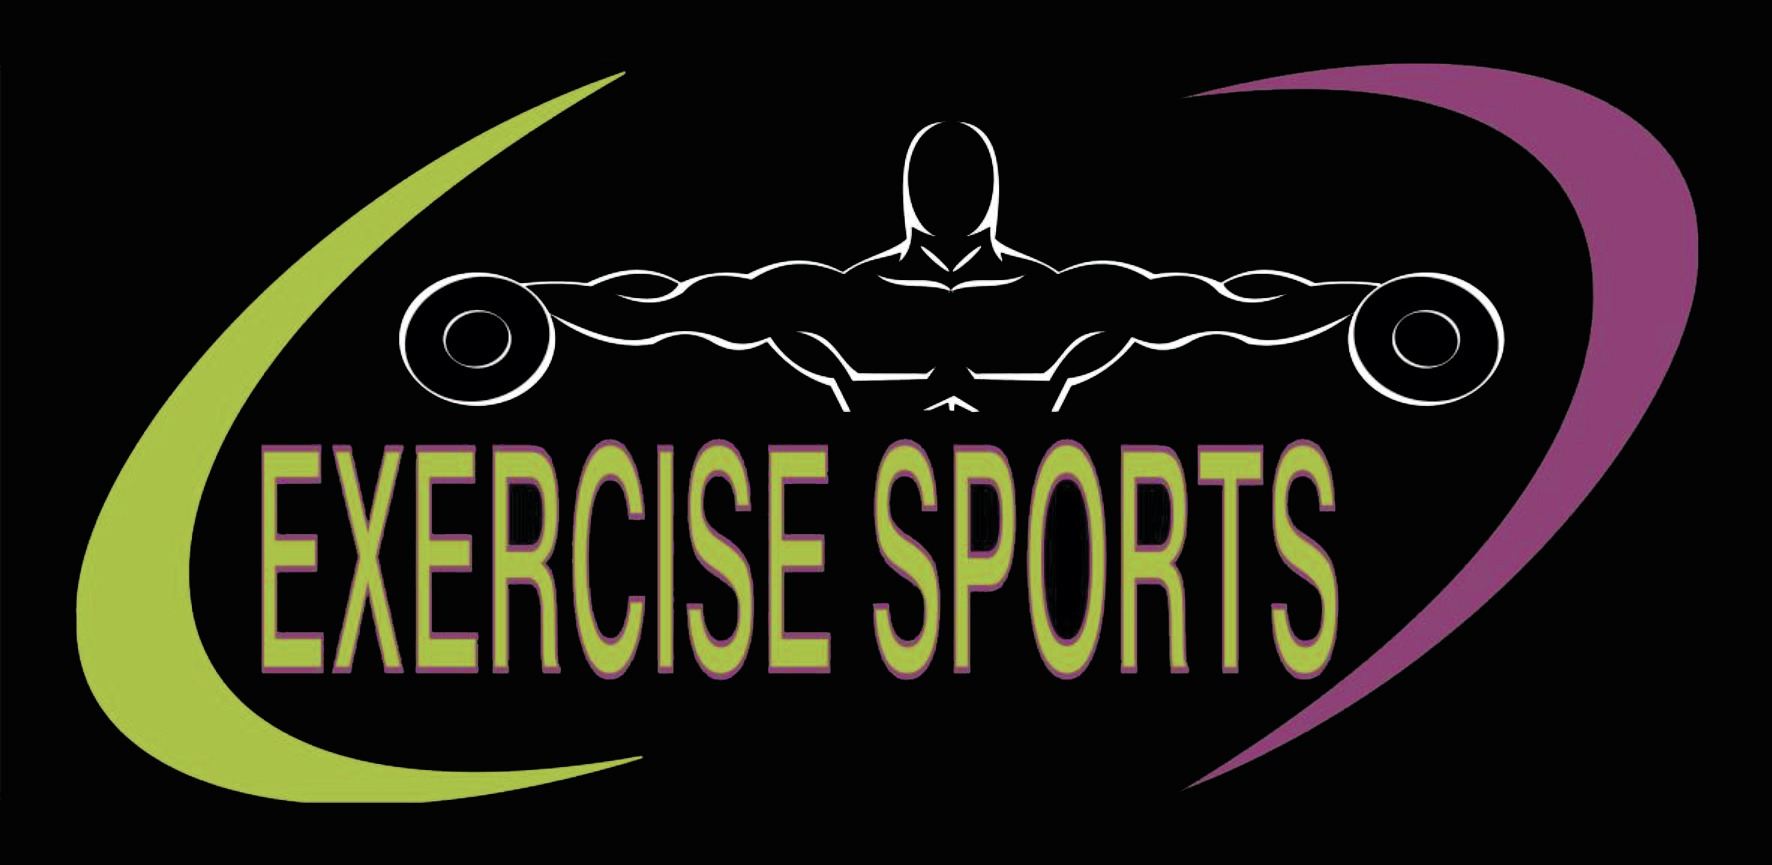 EXERCISE-SPORTS